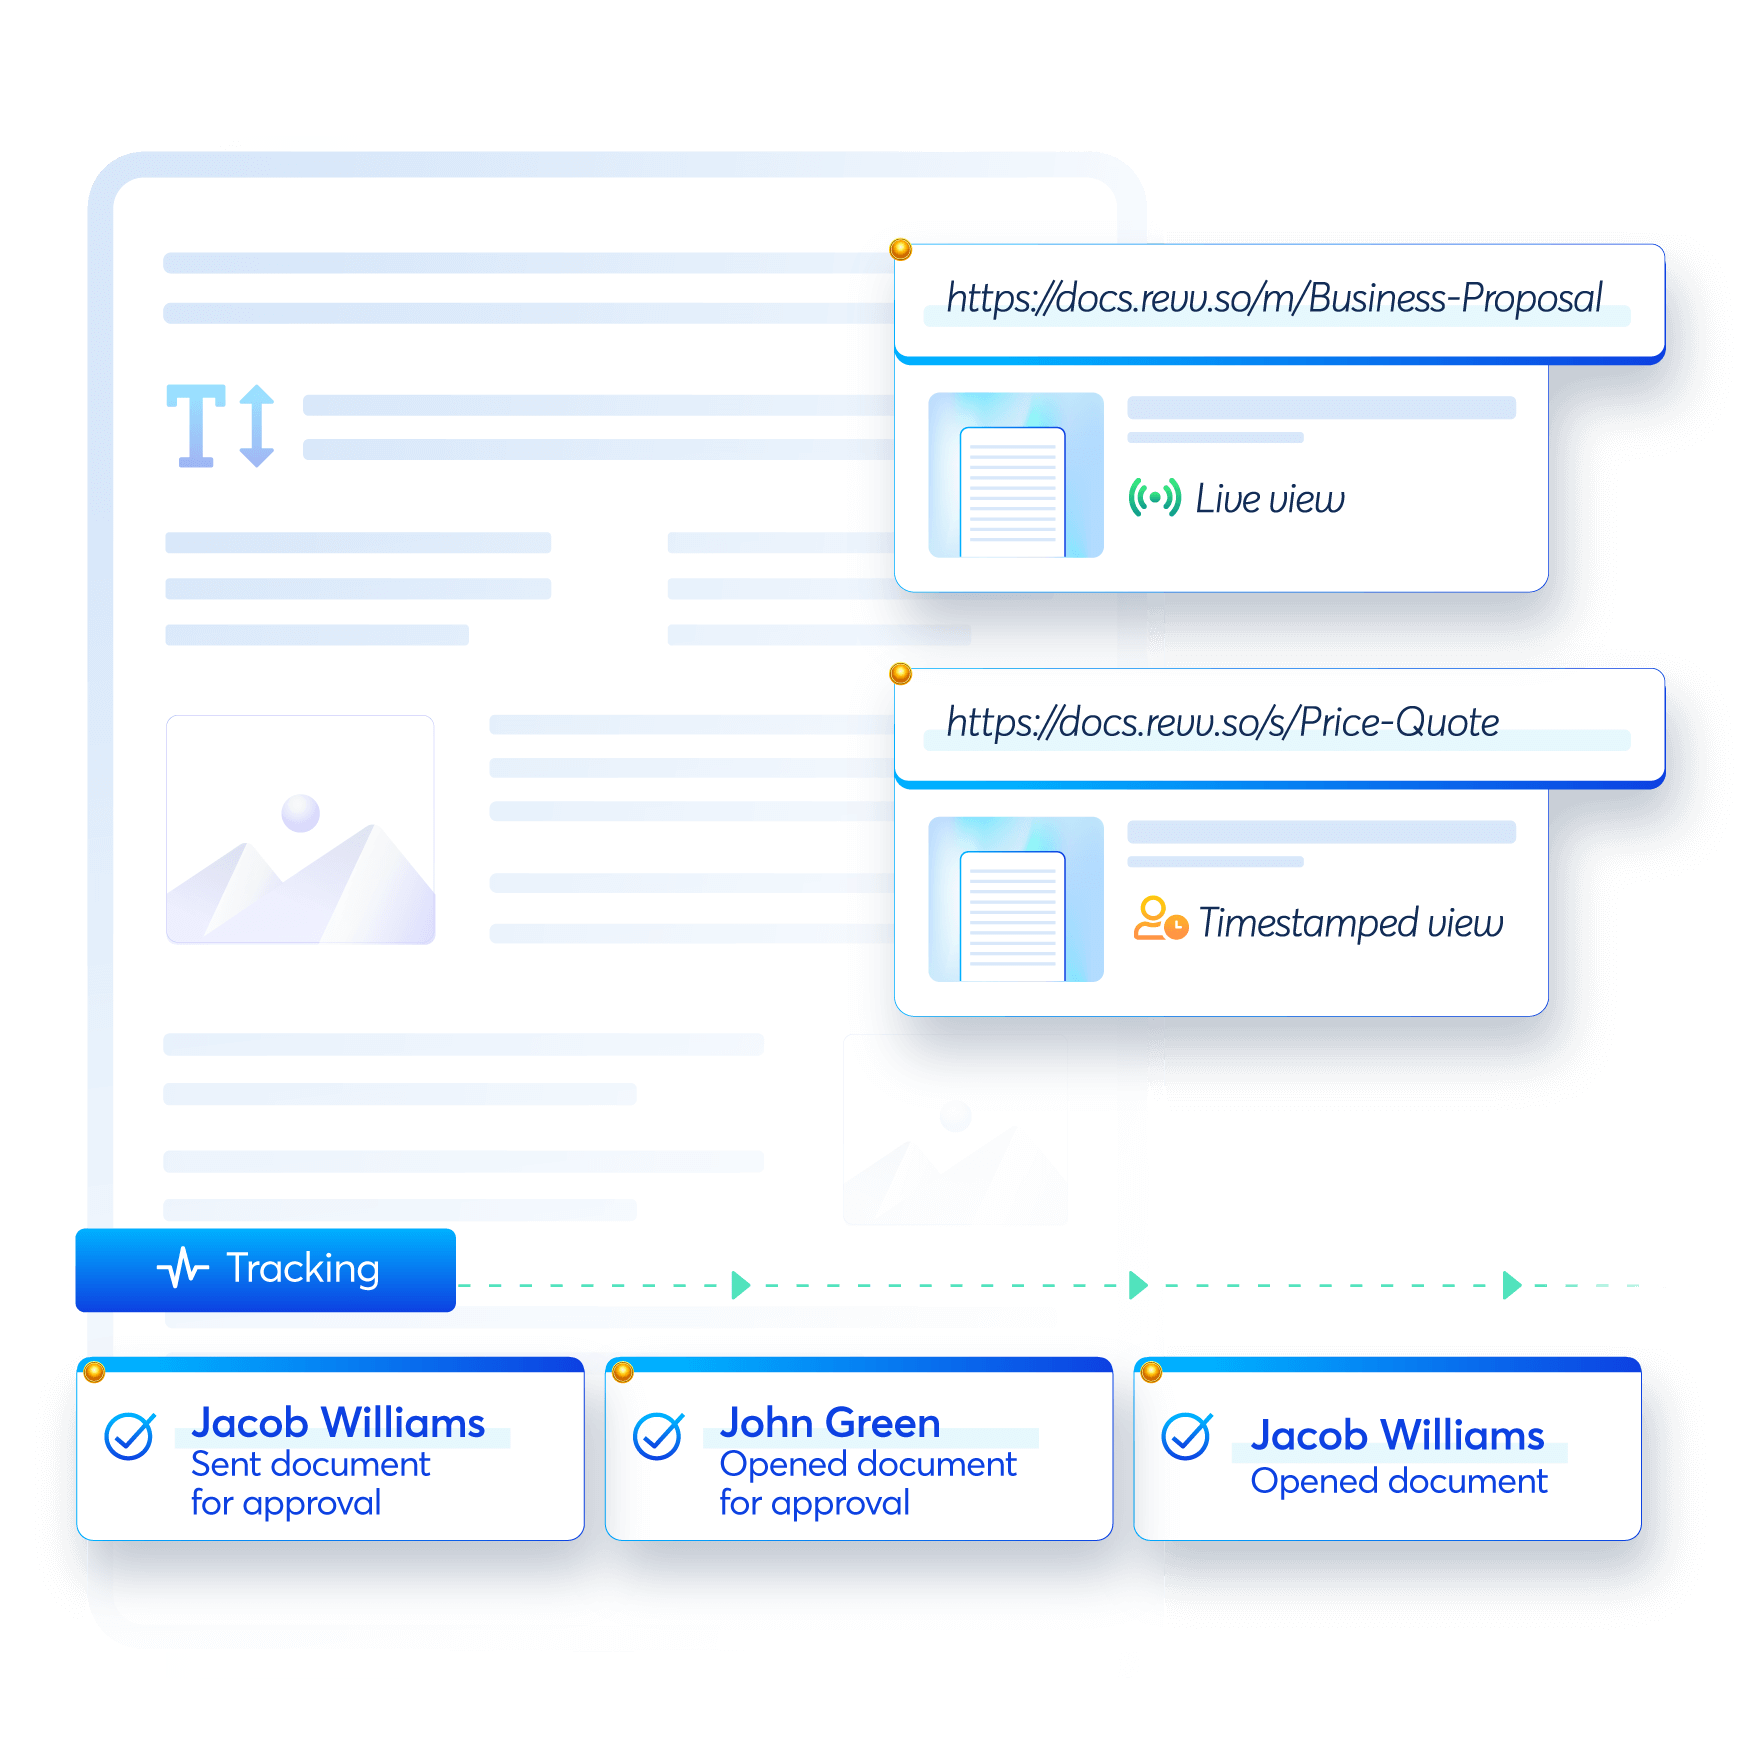 Revv allows collaboration with other users. Sign a file with signature images, by clicking/drawing signature, or with name initials.